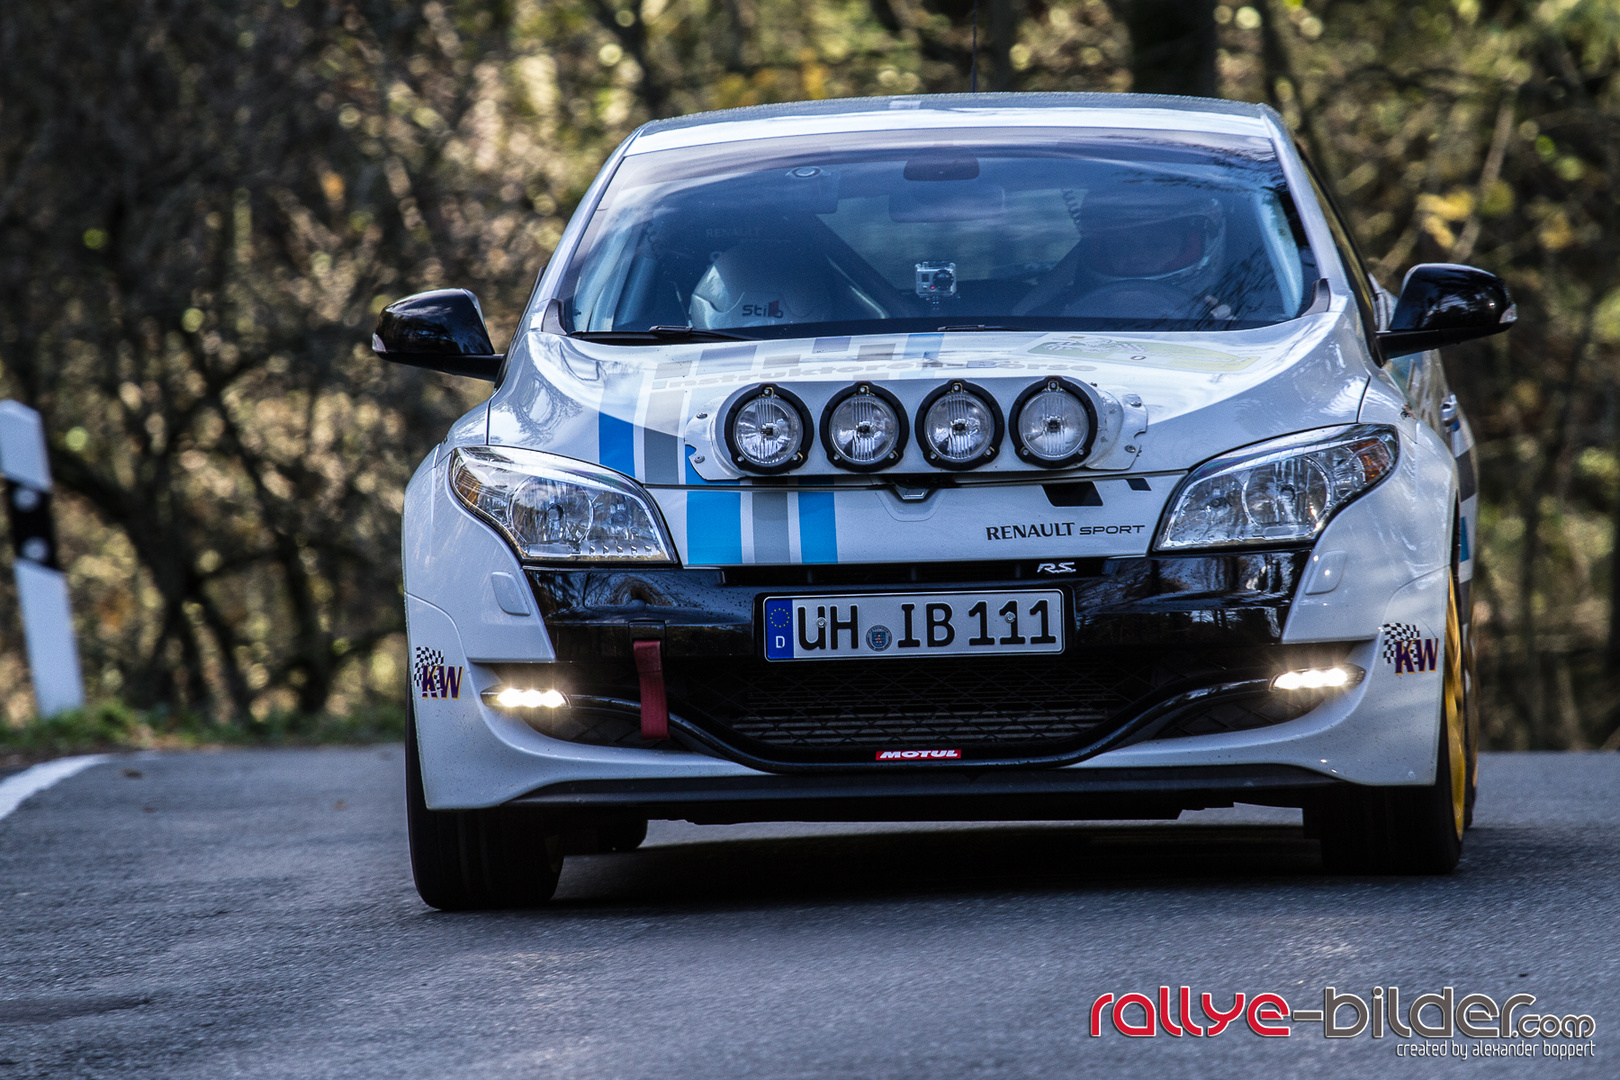 Renault Megane in Action